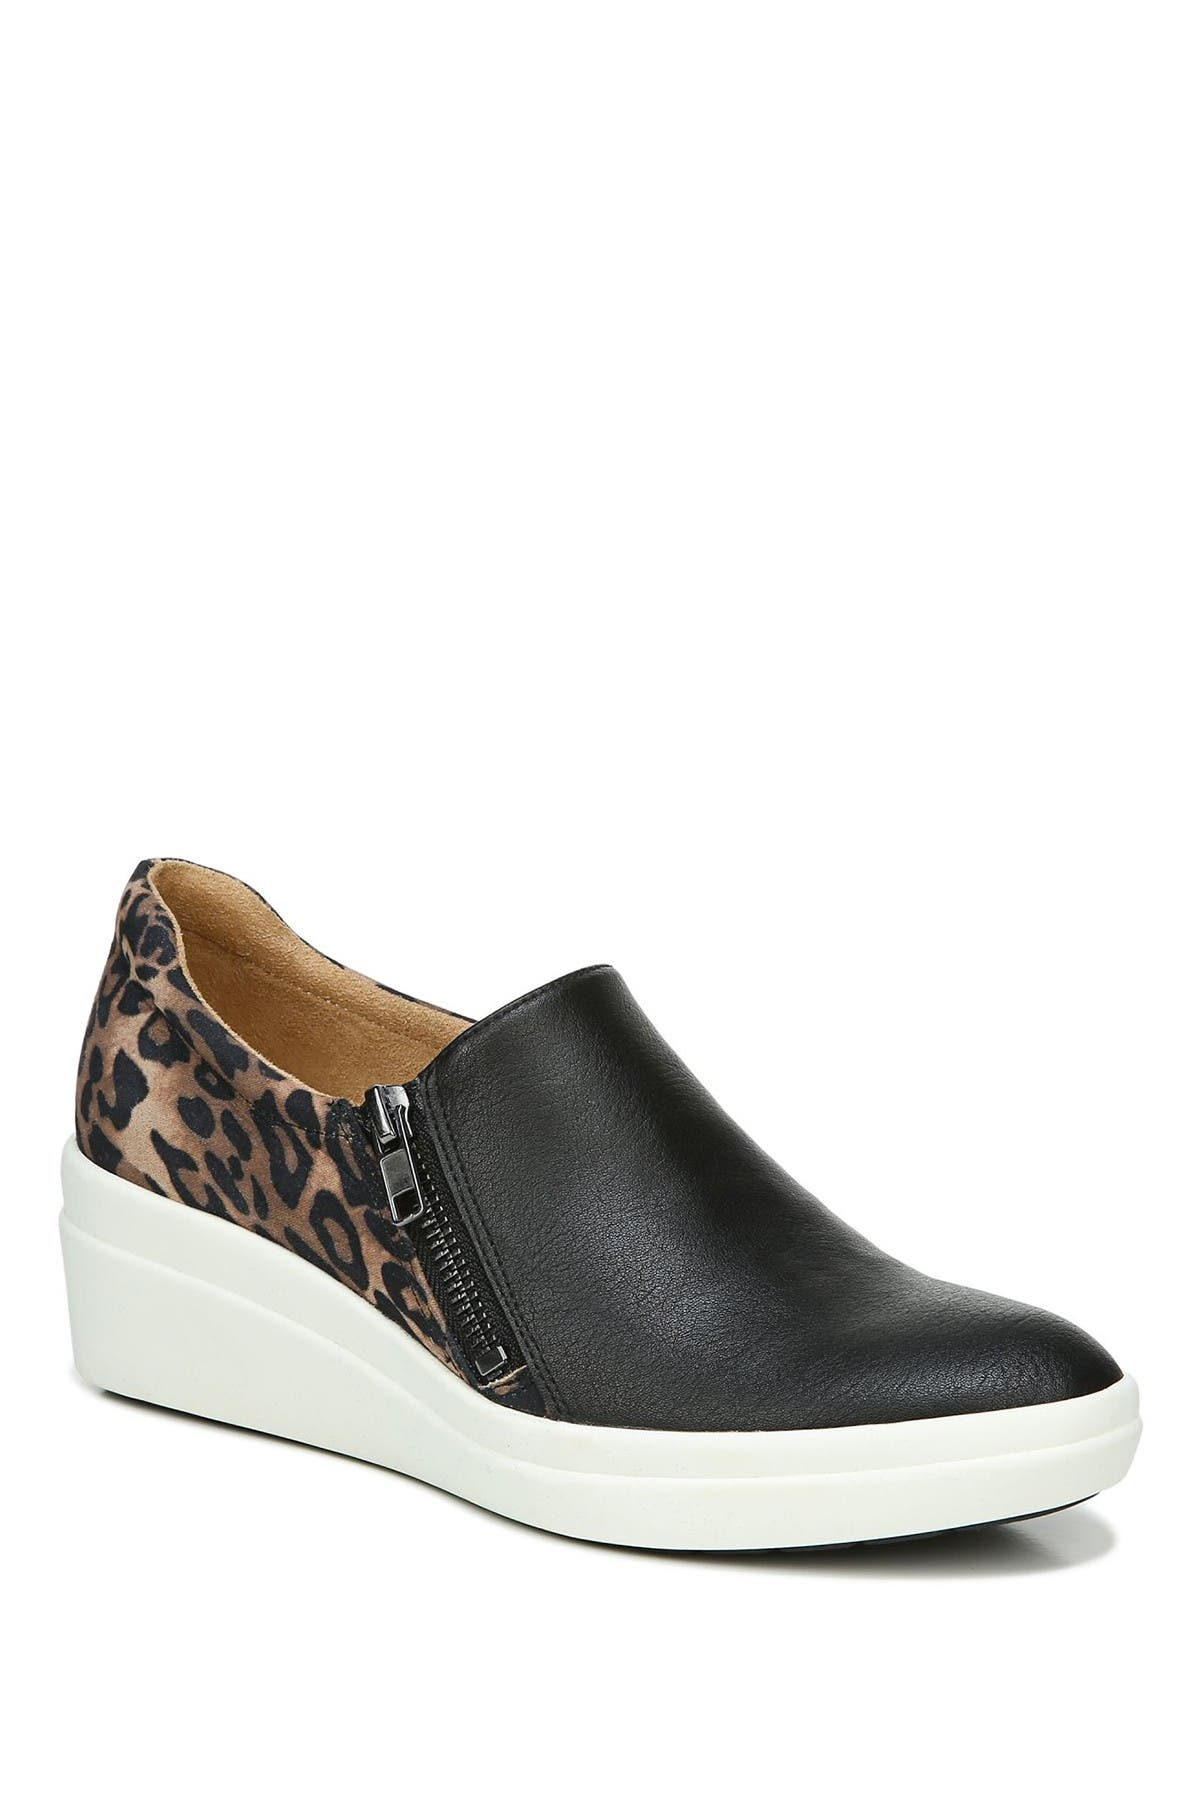 Image of Naturalizer Sierra Wedge Sneaker - Wide Width Available